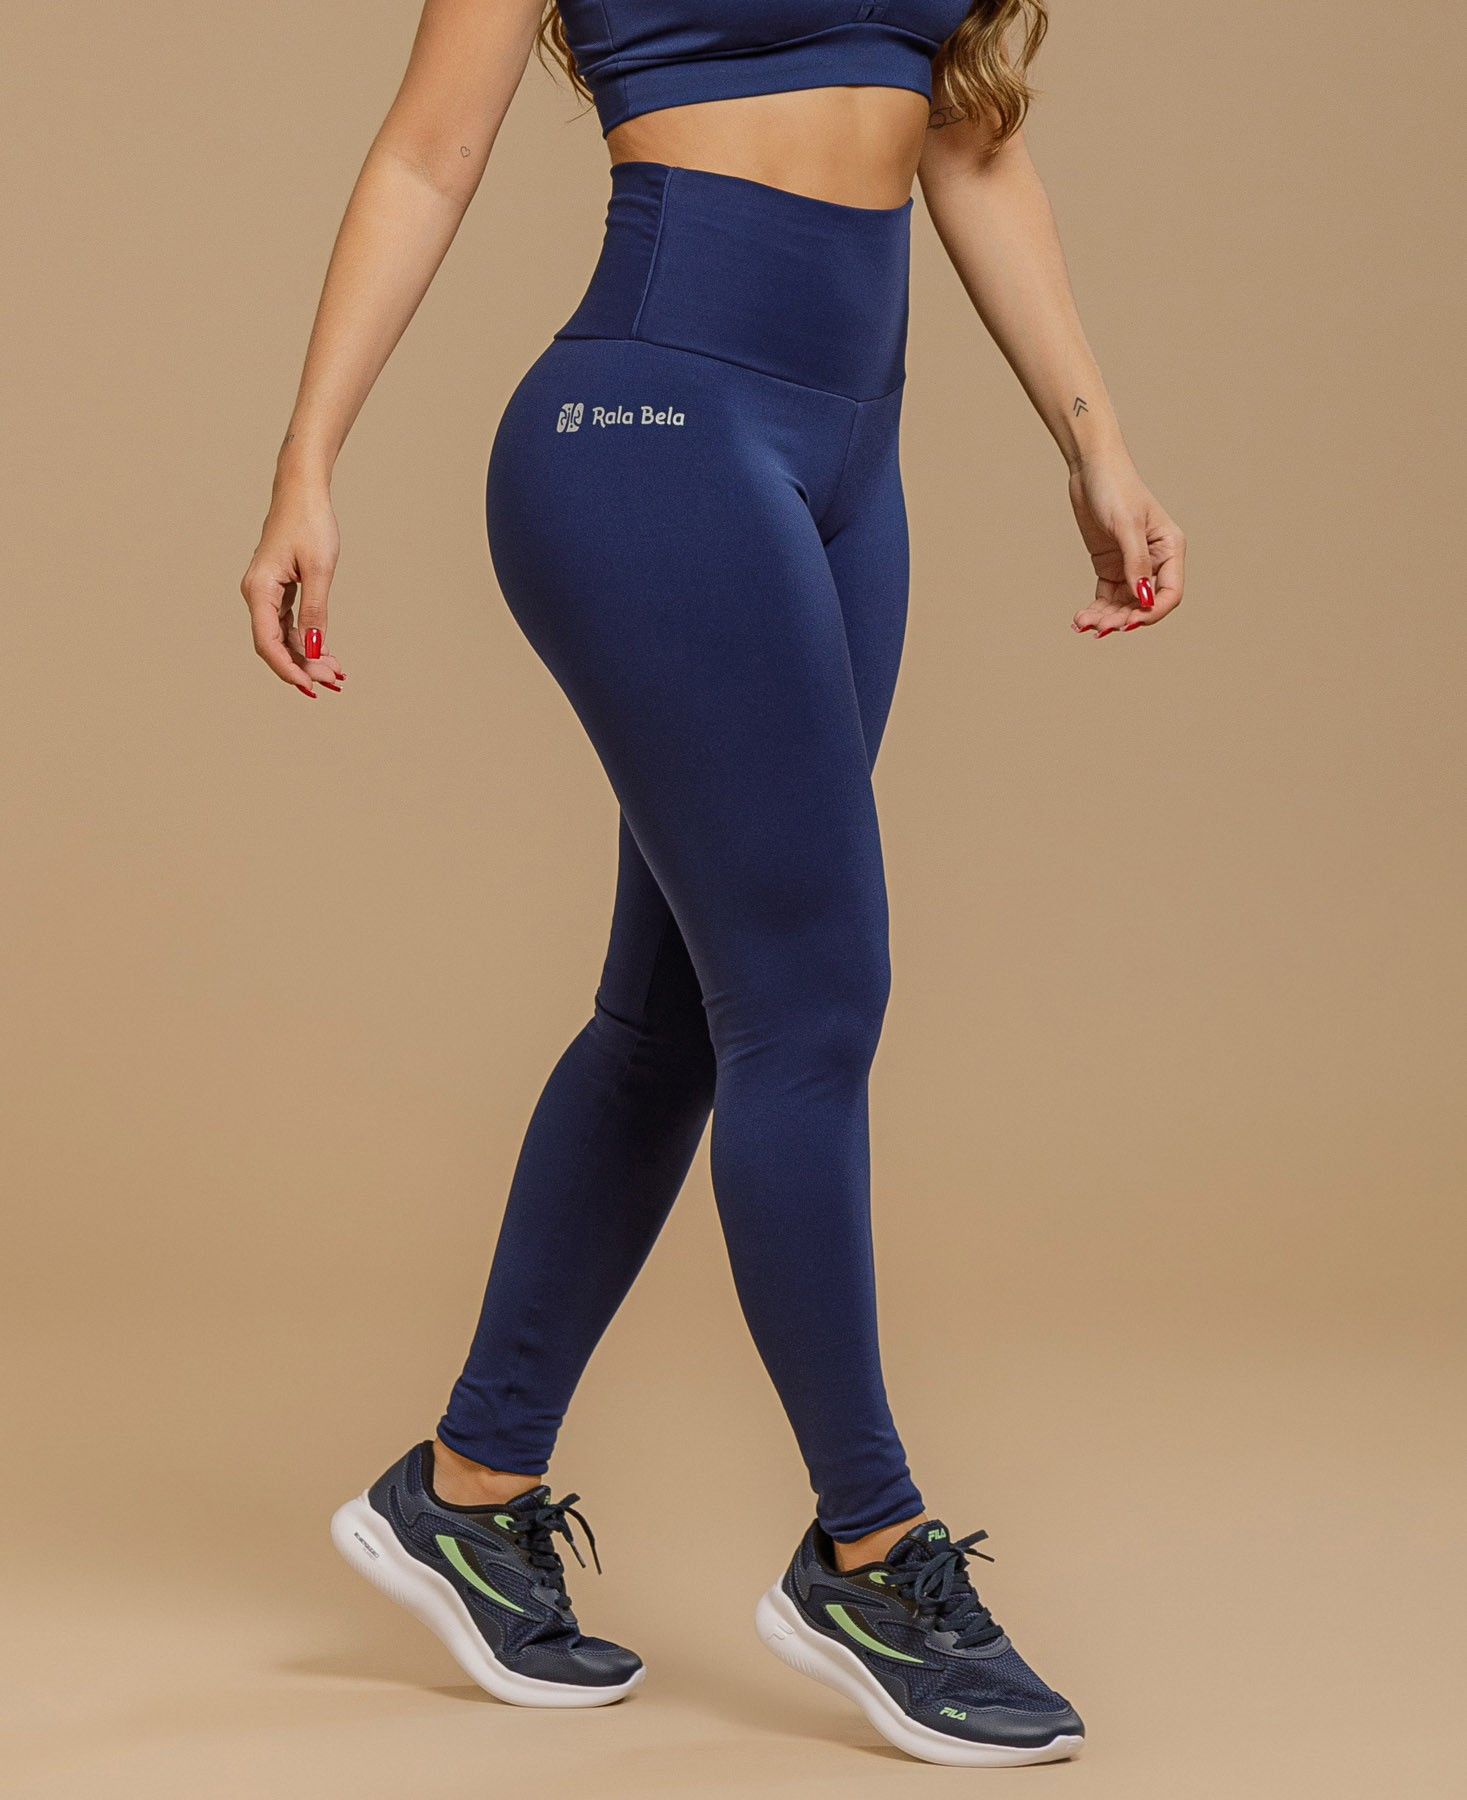 Legging Supplex Cós Alto Essencial RB